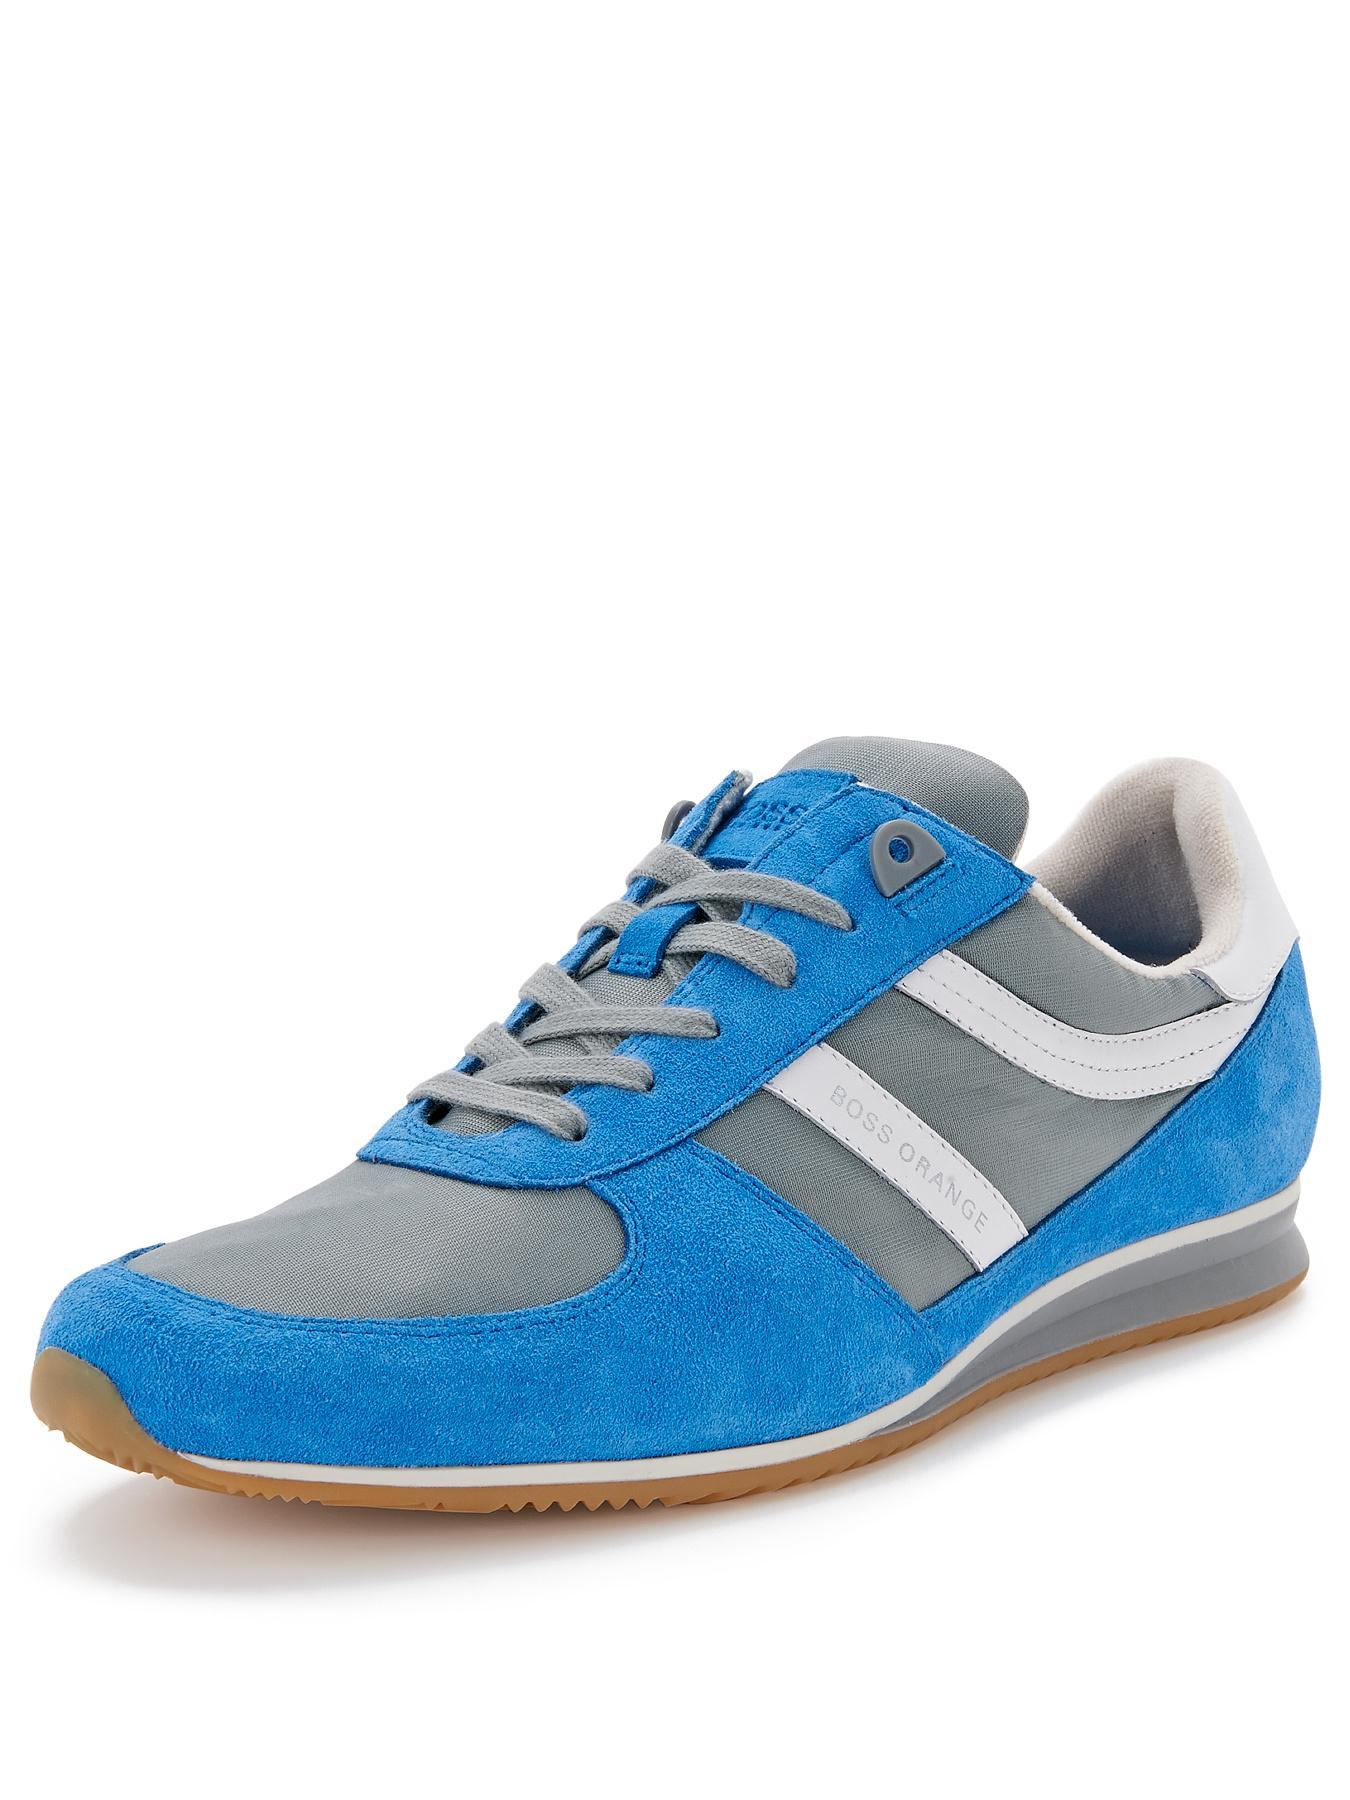 Hugo Boss Orange Adinous Lace Trainers - Blue, Blue